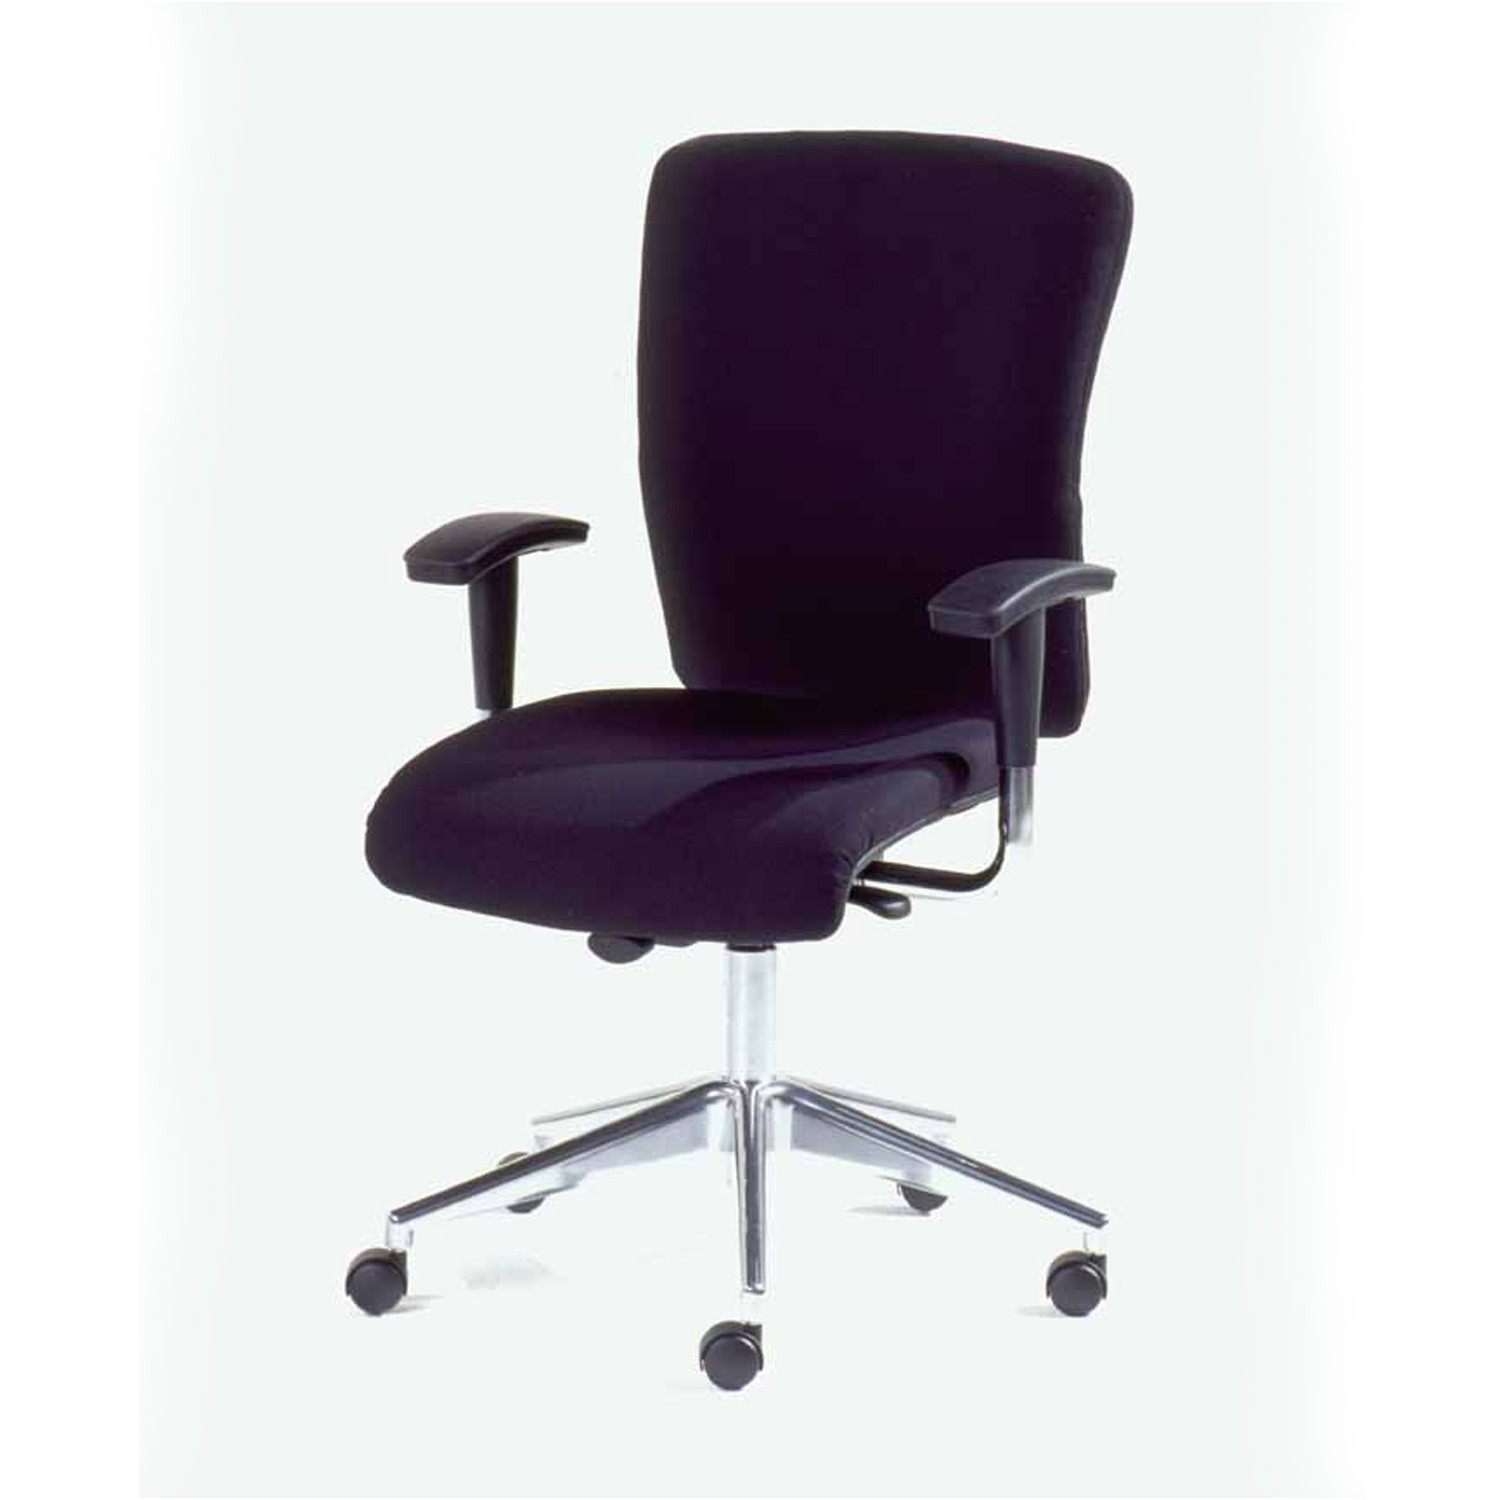 Go Task Chairs for Office Use